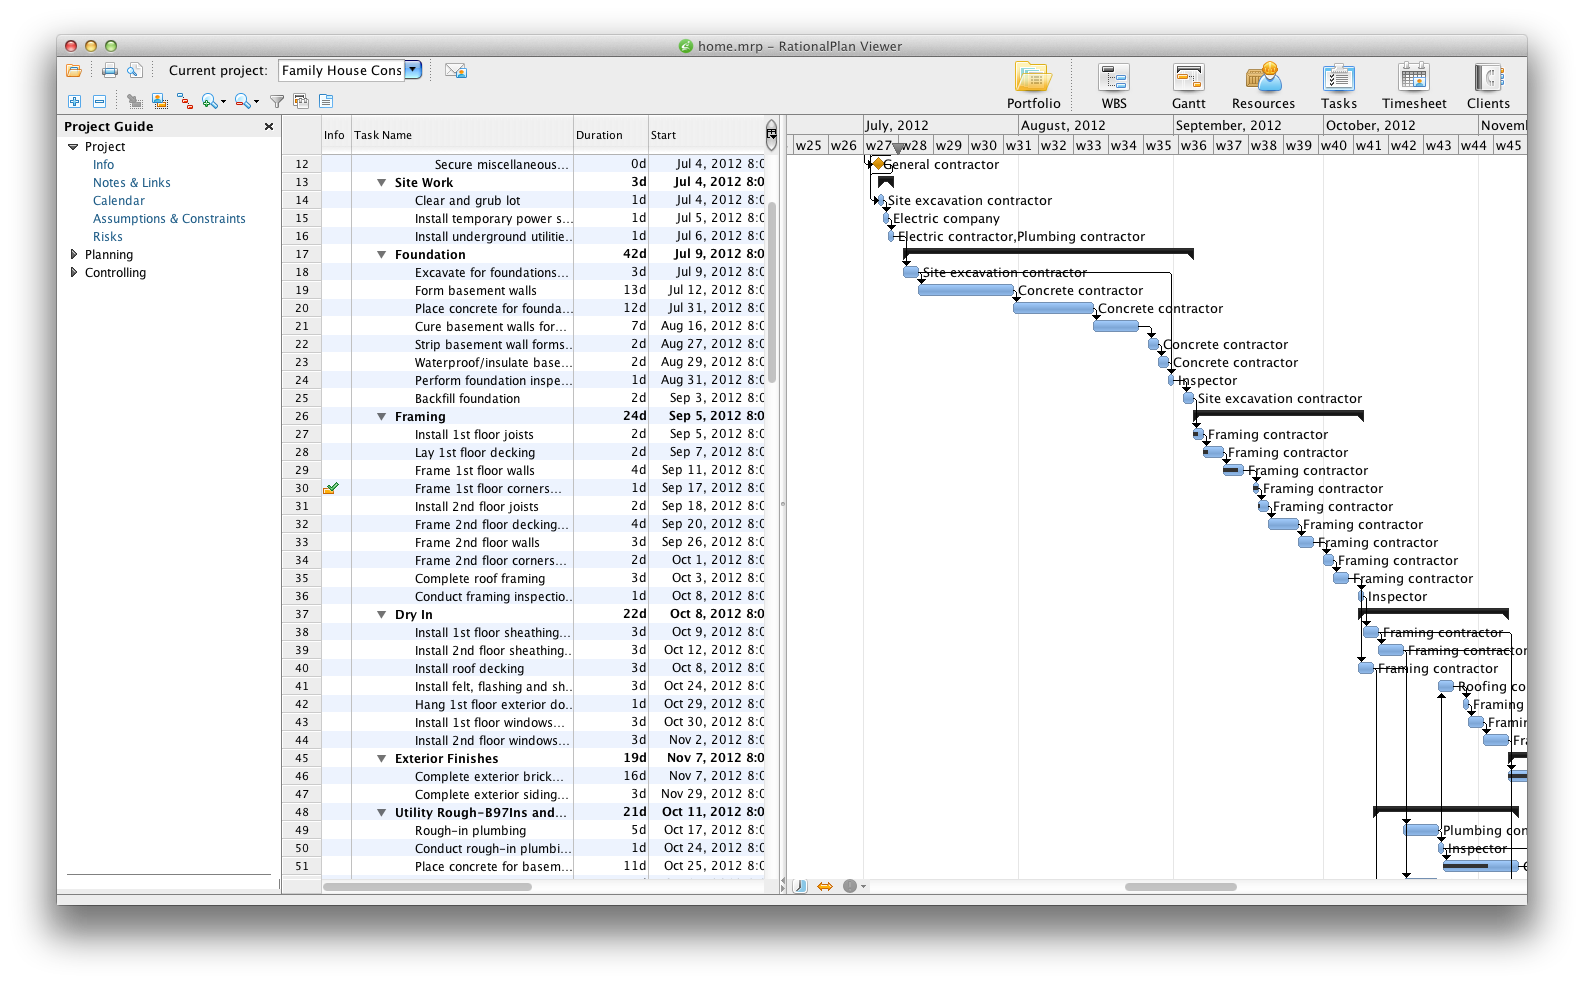 RationalPlan Project Viewer for Mac